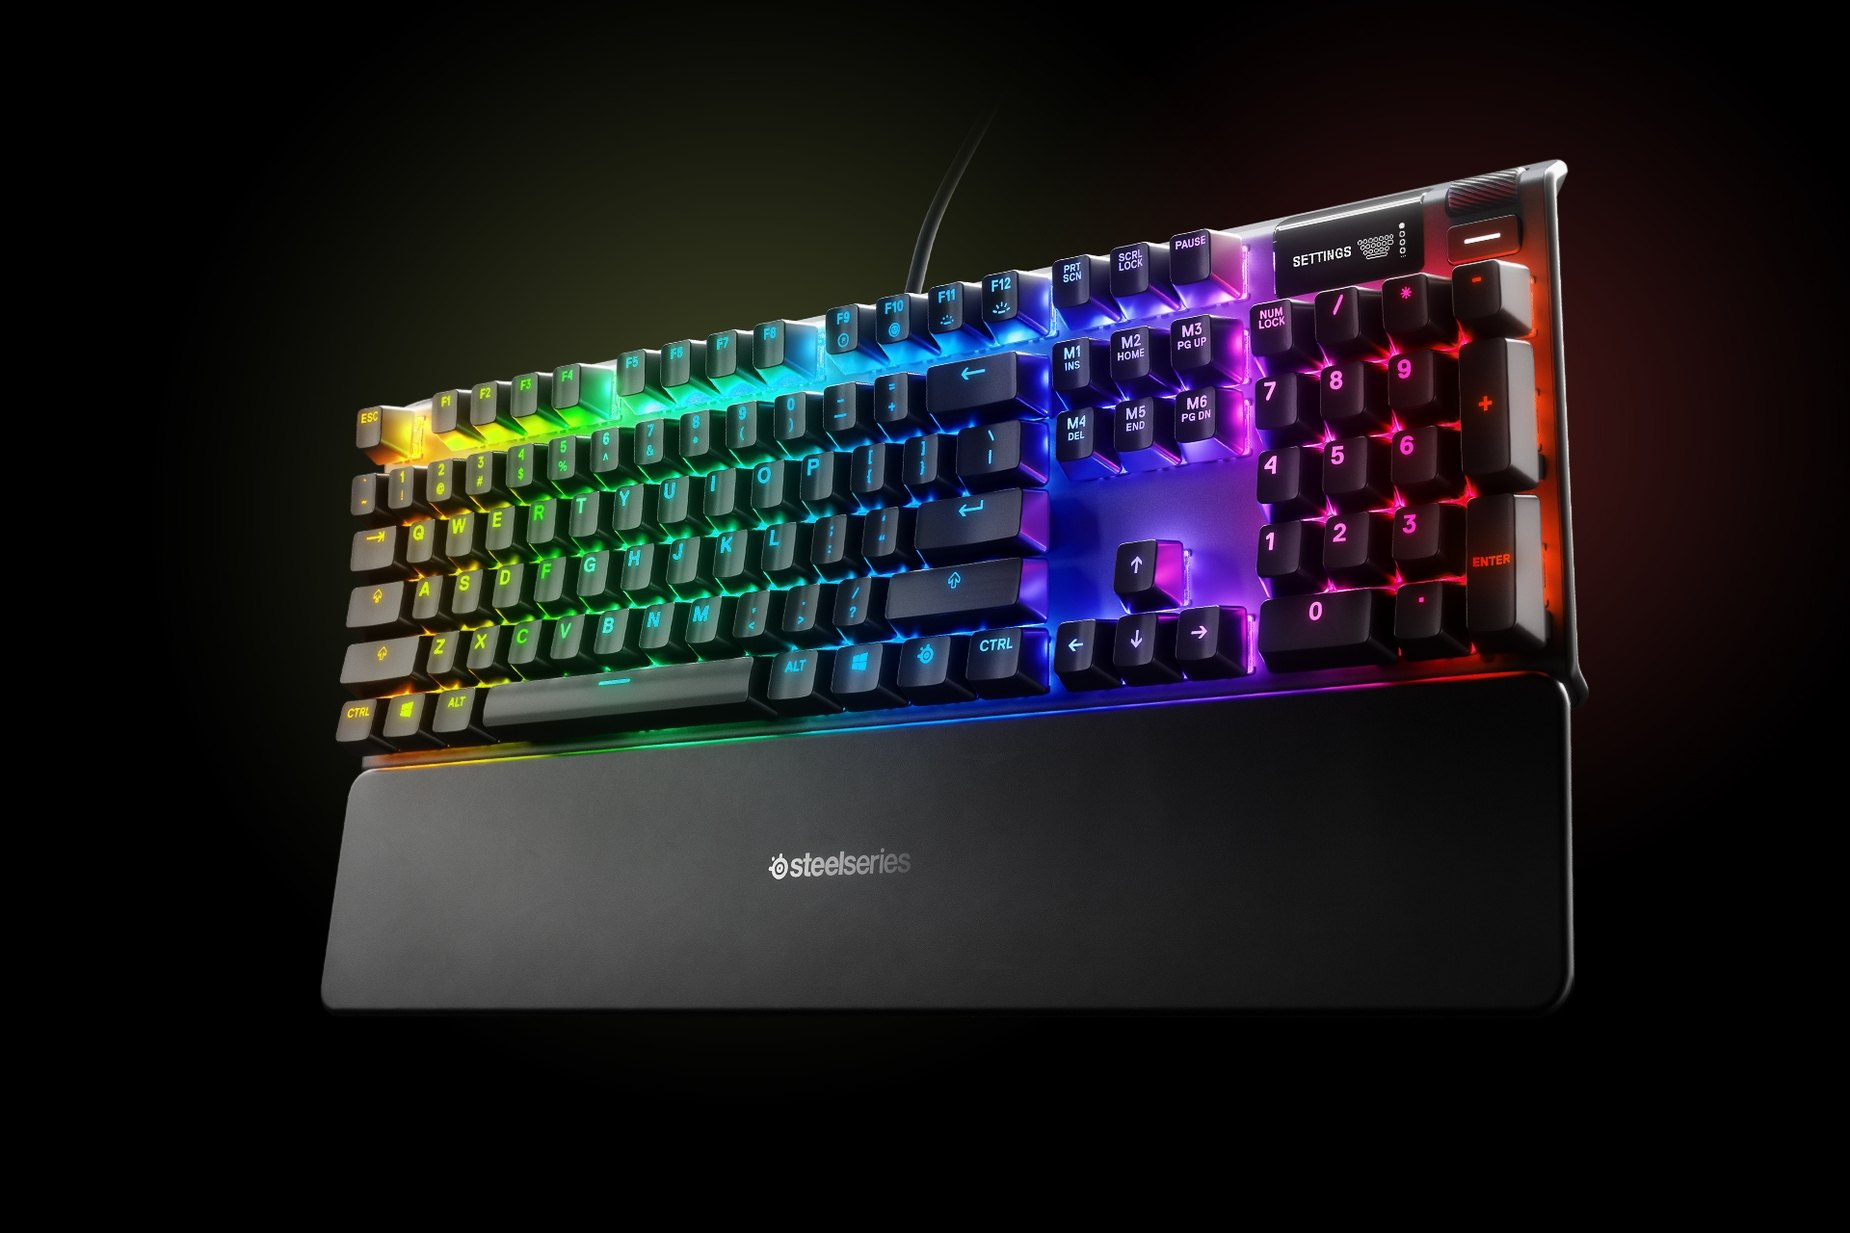 US English-Apex 7 (Red Switch) gaming keyboard with the illumination lit up on dark background, also shows the OLED screen and controls used to change settings and adjust audio